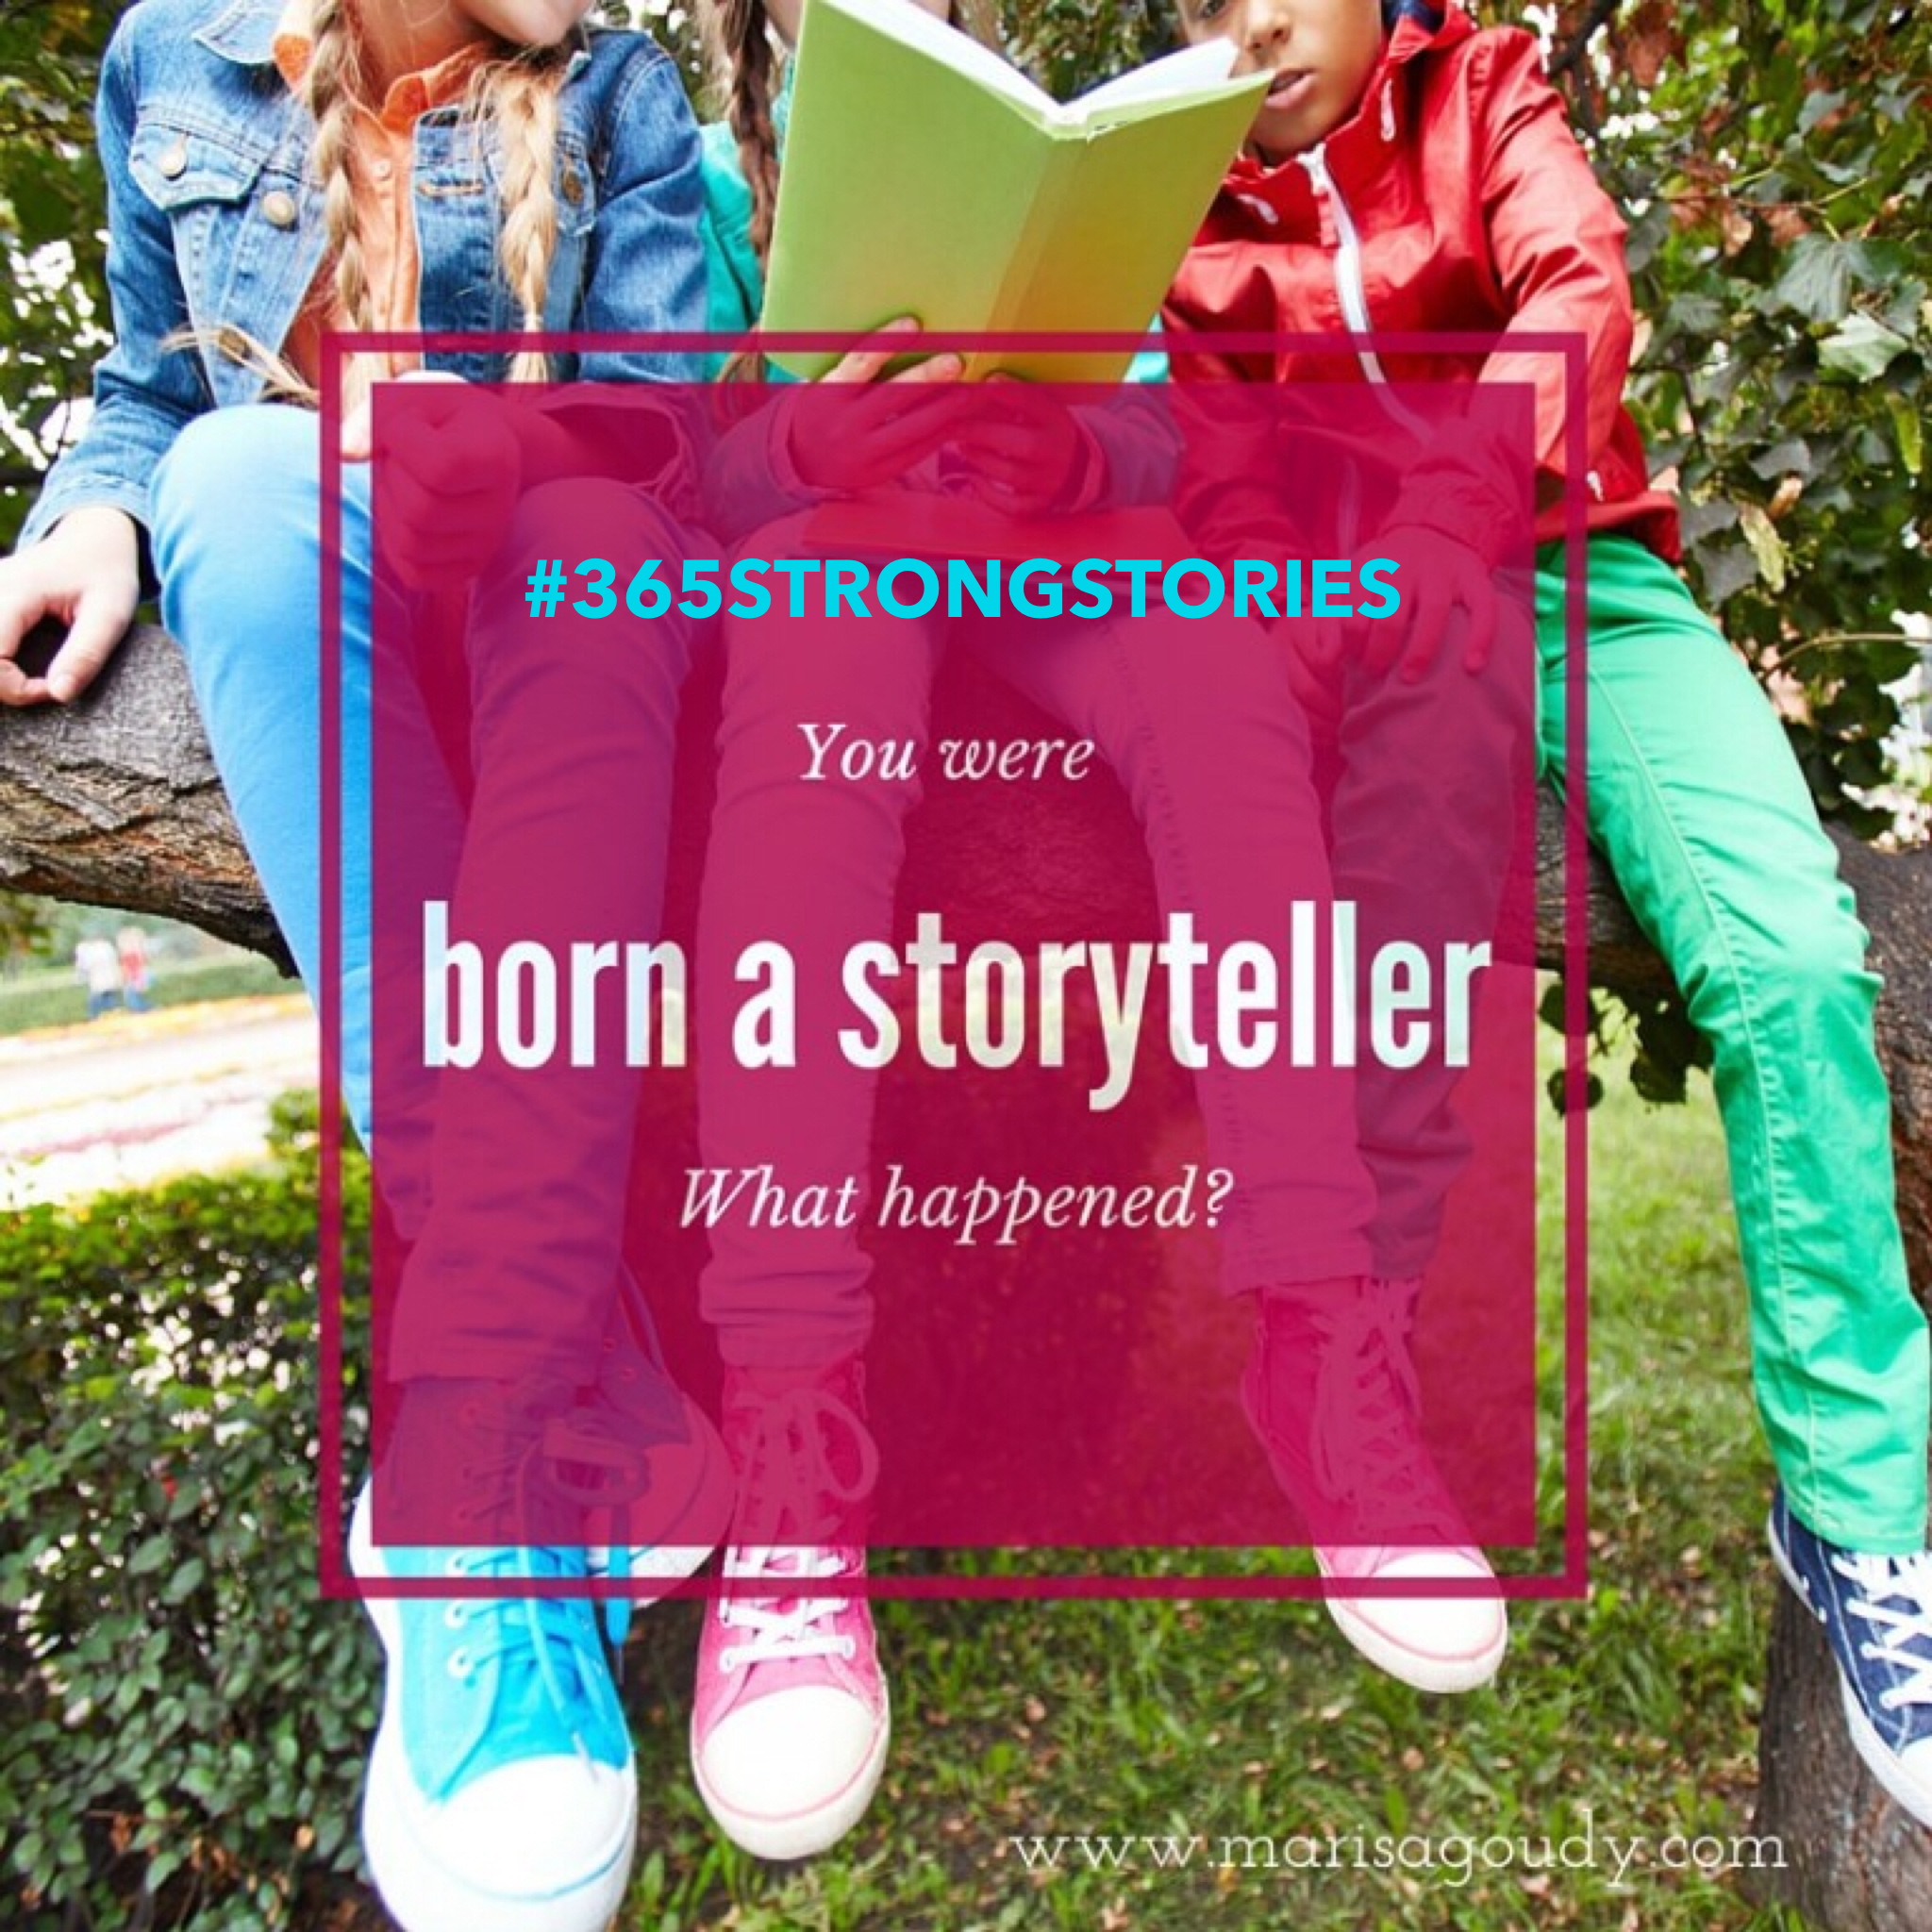 You were born a storyteller. What happened? #365StrongStories by Marisa Goudy